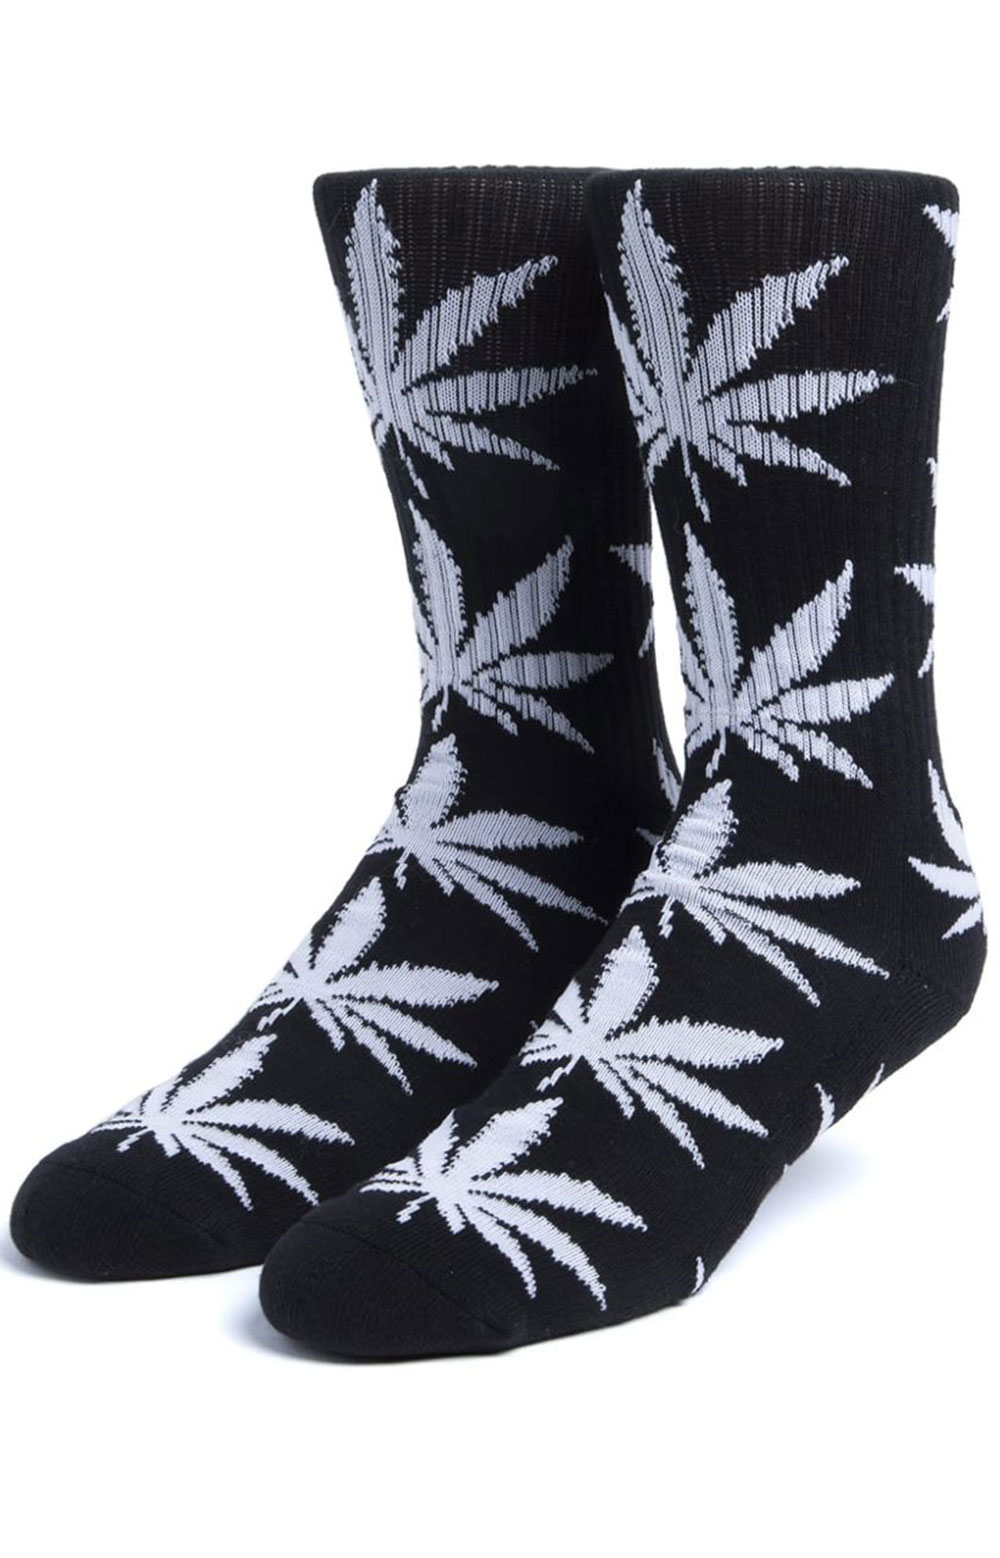 Essentials Plantlife Sock 3 Pack - Black/White/Huf Green